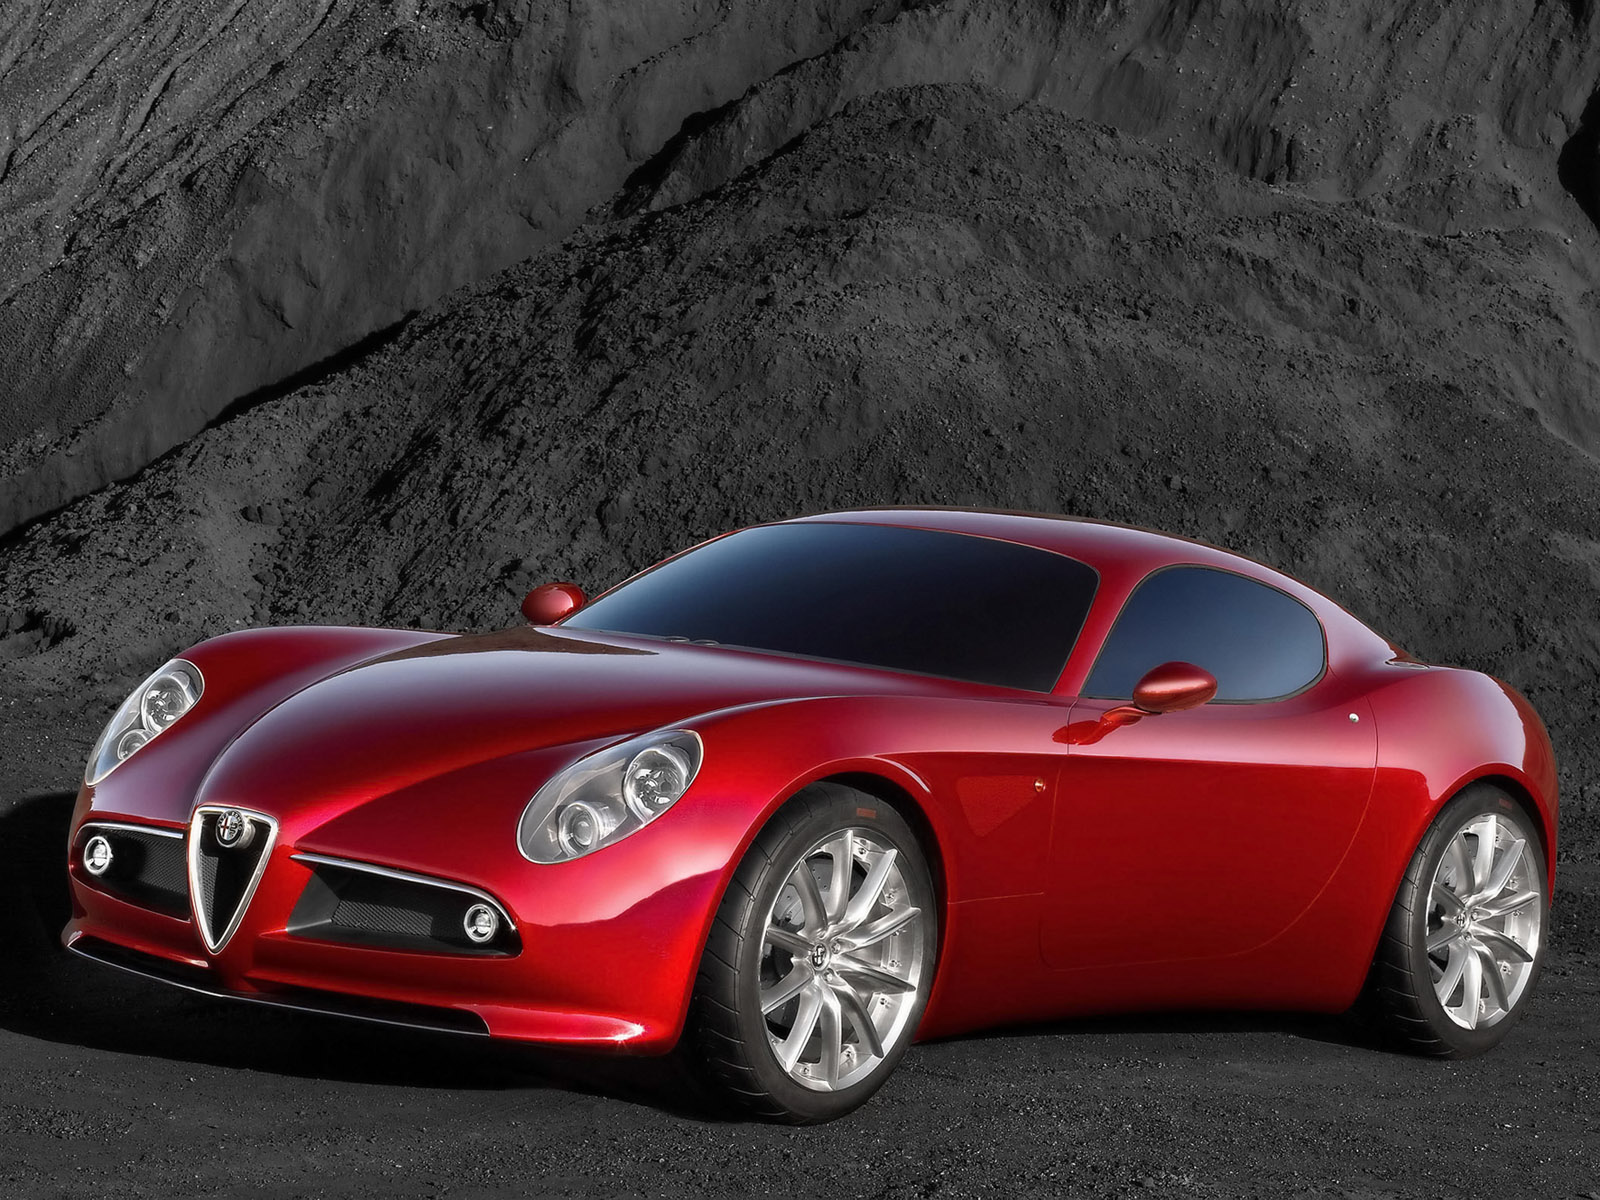 Topworldauto Photos Of Alfa Romeo 8c Competizione Photo Galleries